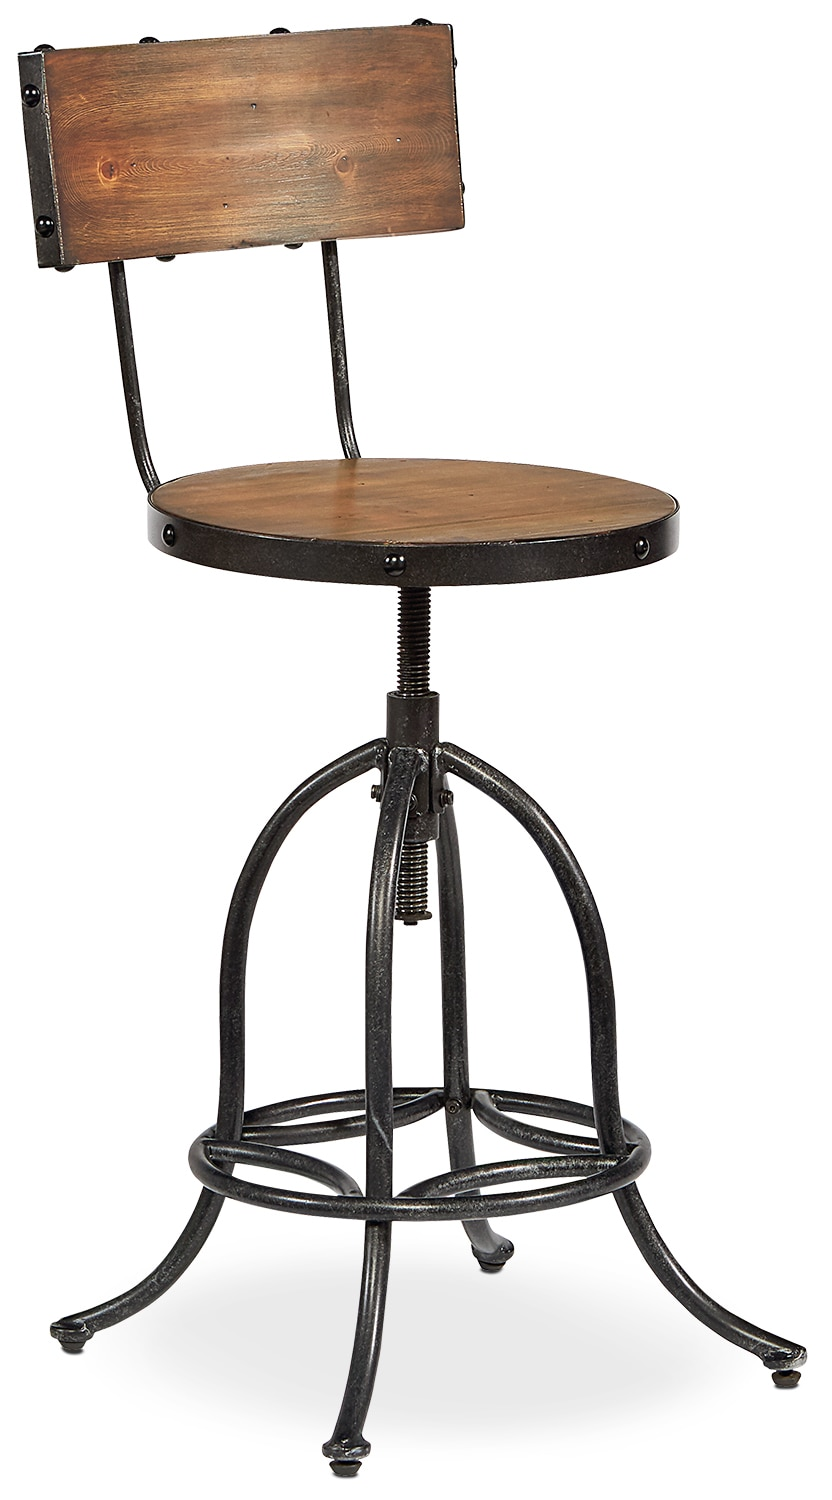 Accent and Occasional Furniture - Architect Stool - Blackened Bronze